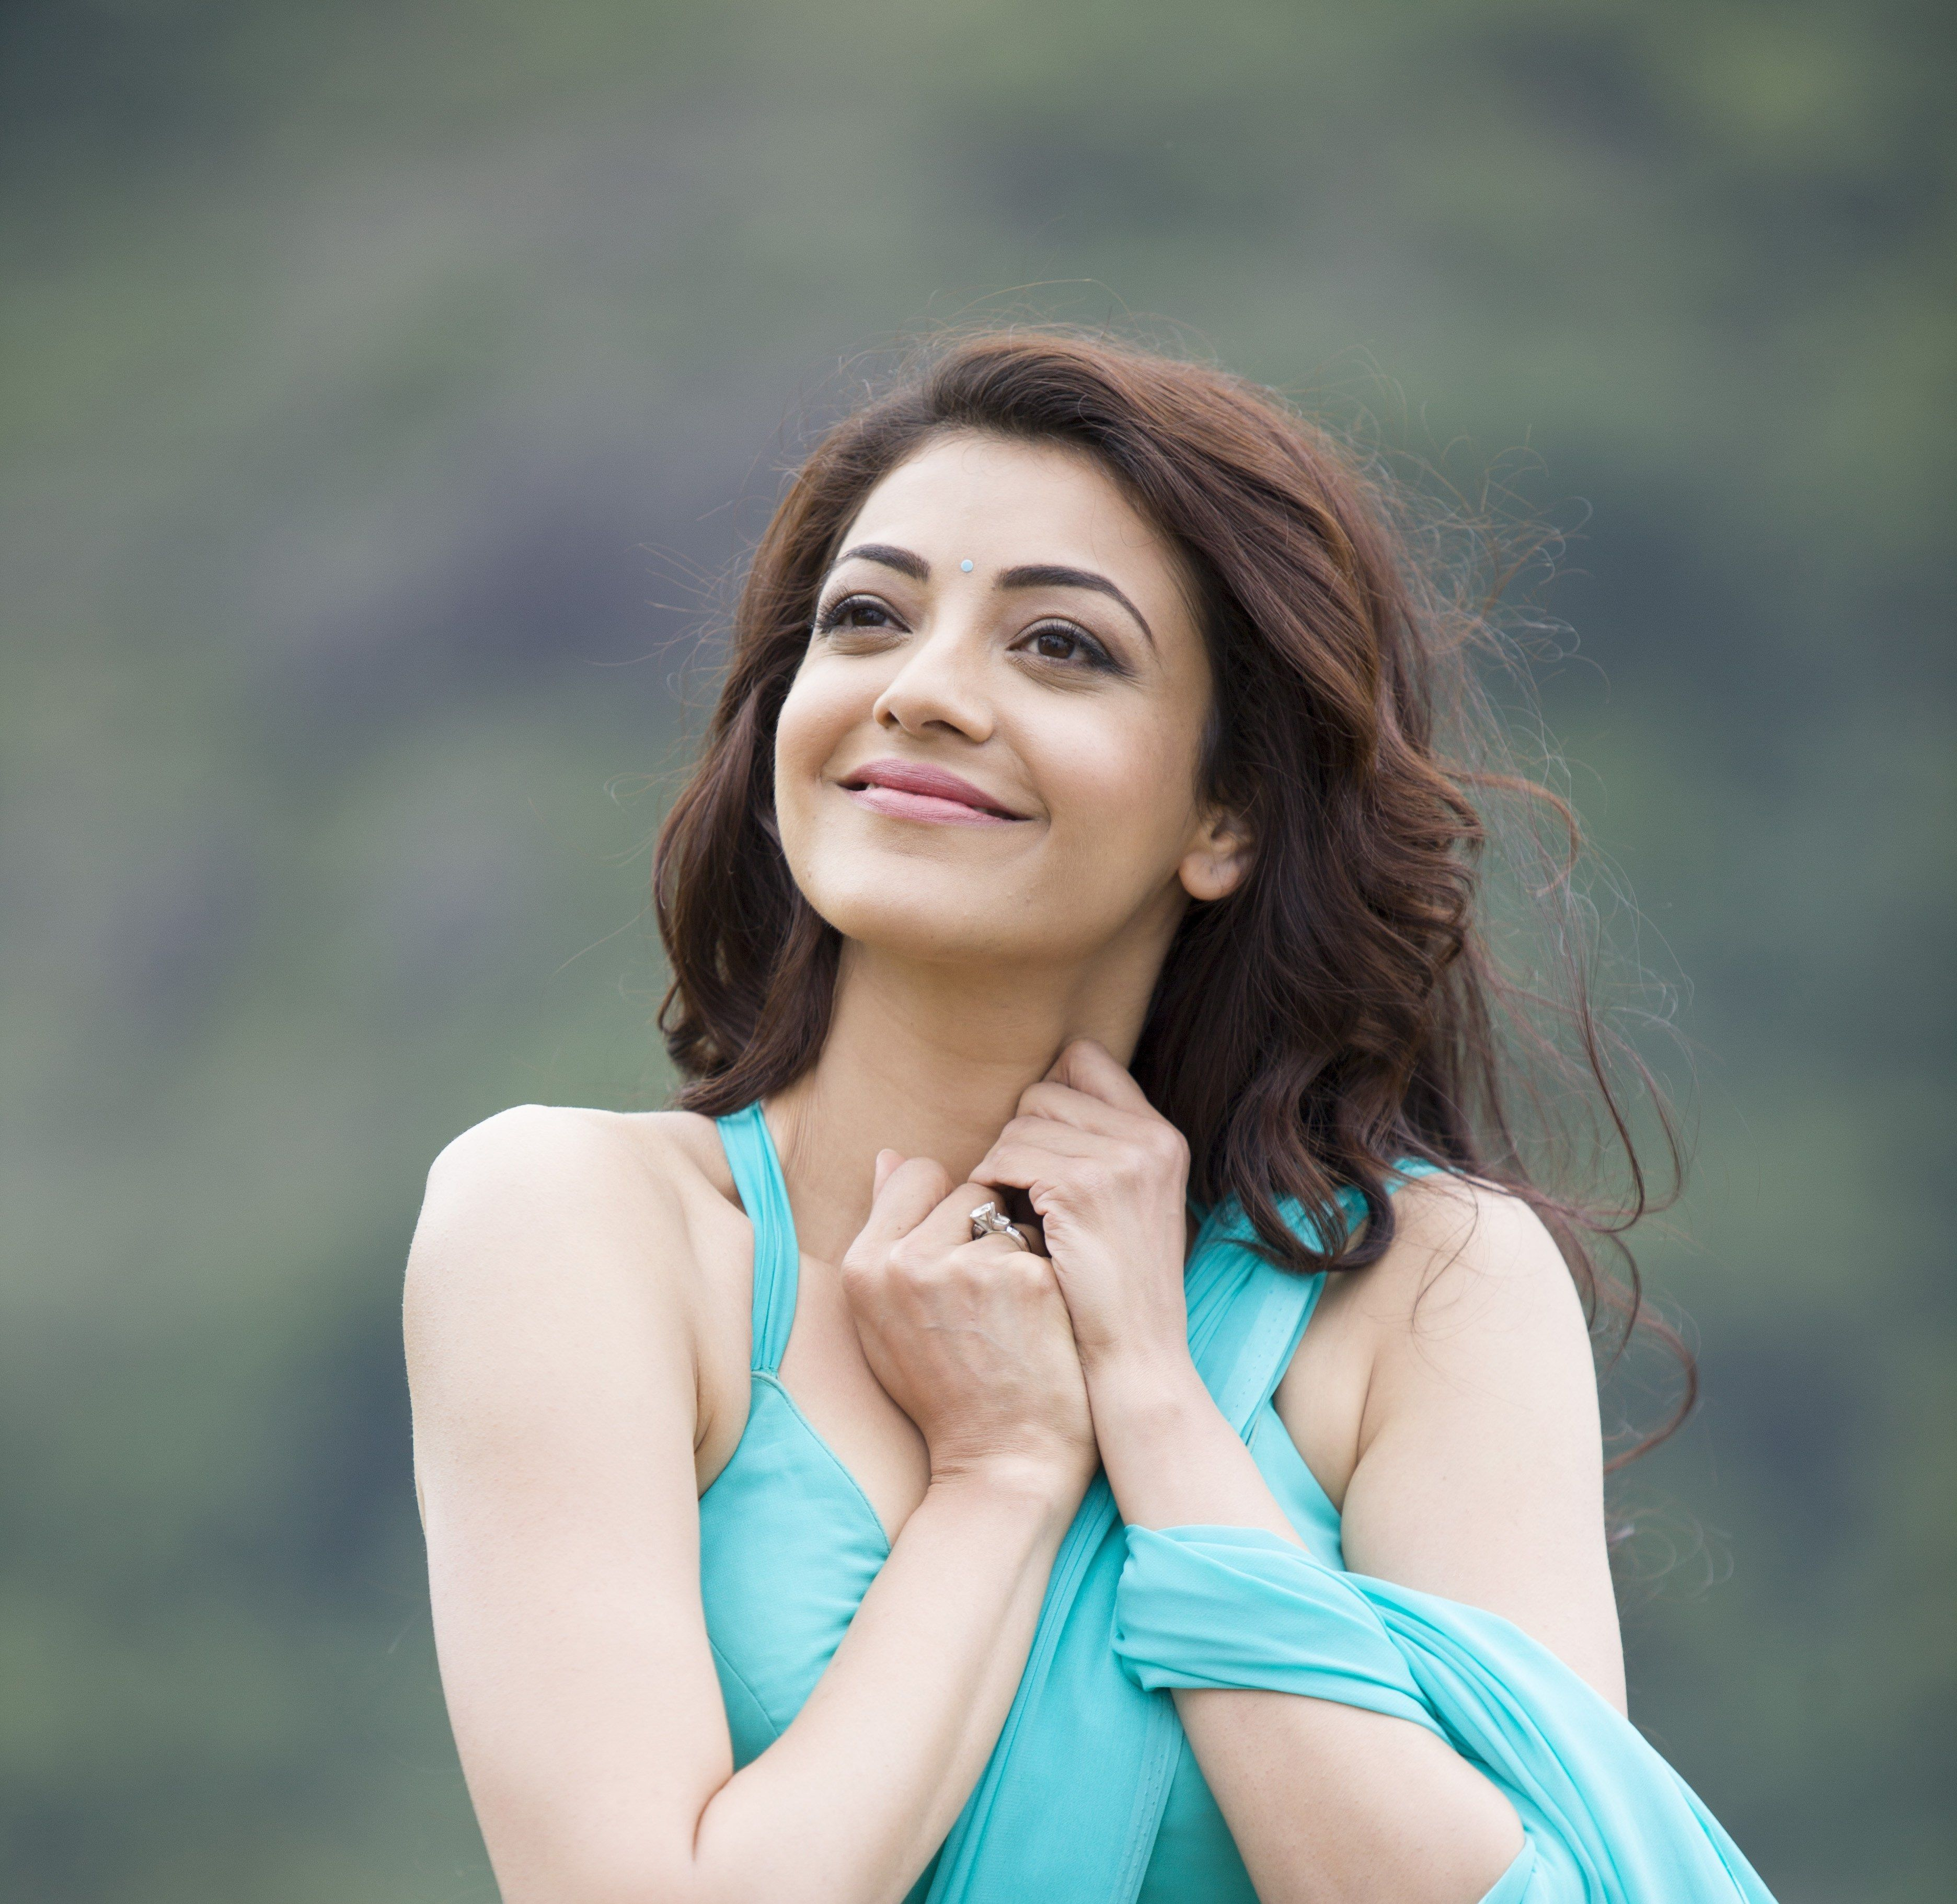 4k Wallpaper Of Kajal Agarwal